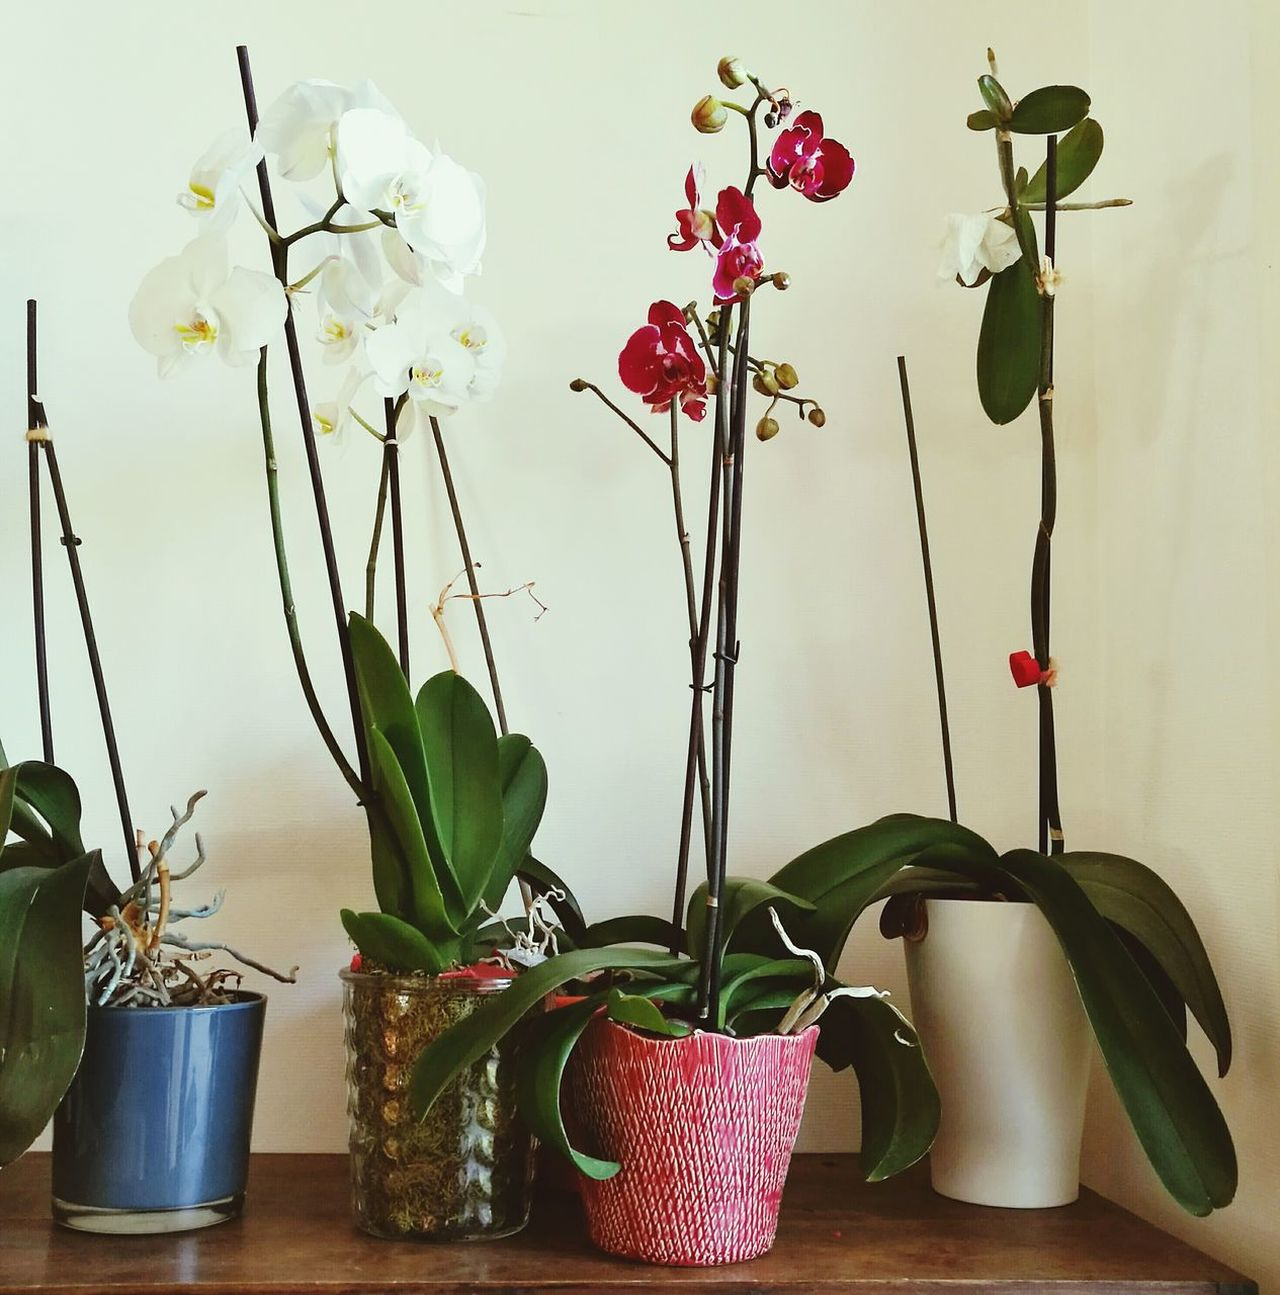 Plant Flower Vase Twig Nature No People Surreal Indoors  Aromatherapy Dried Plant Day